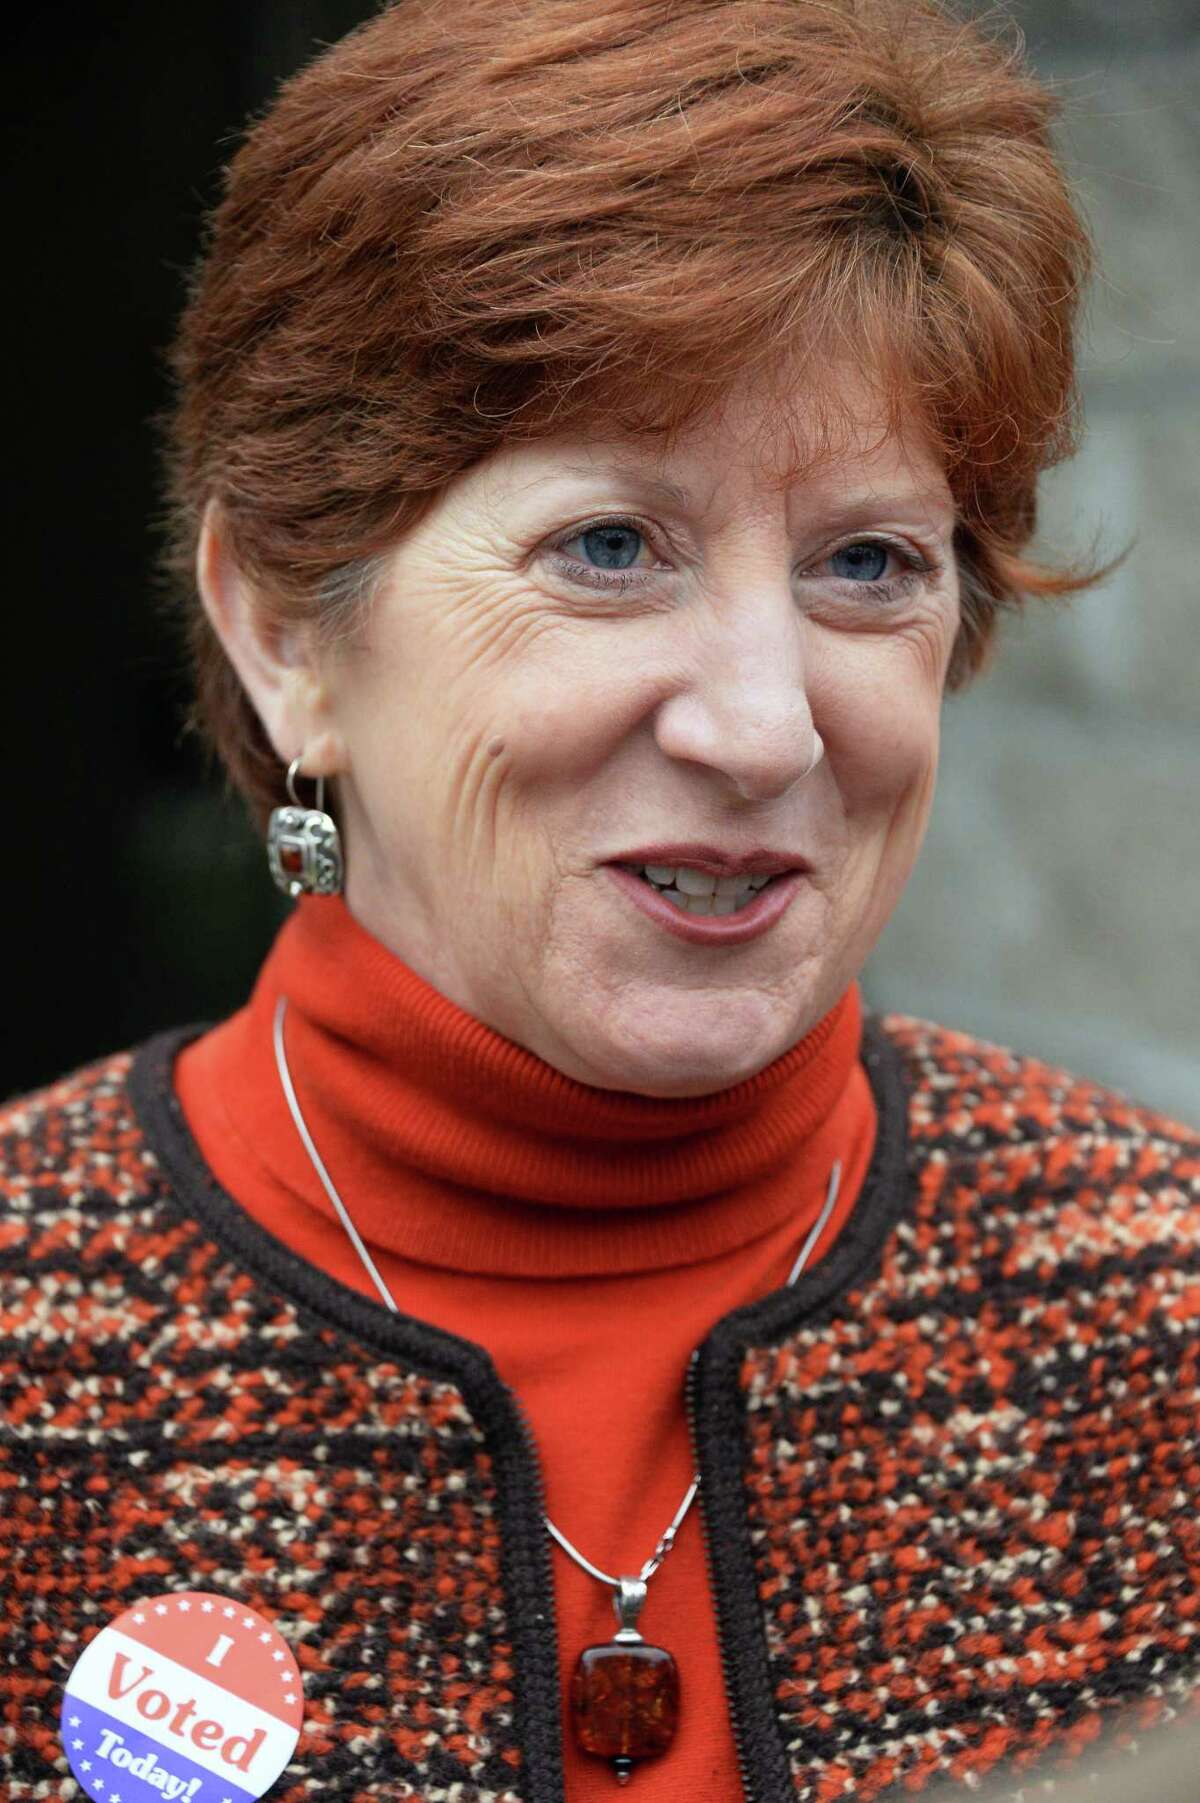 Mayor Kathy Sheehan argued points of immigration with Fox News host Tucker Carlson on Tuesday night. (John Carl D'Annibale / Times Union)